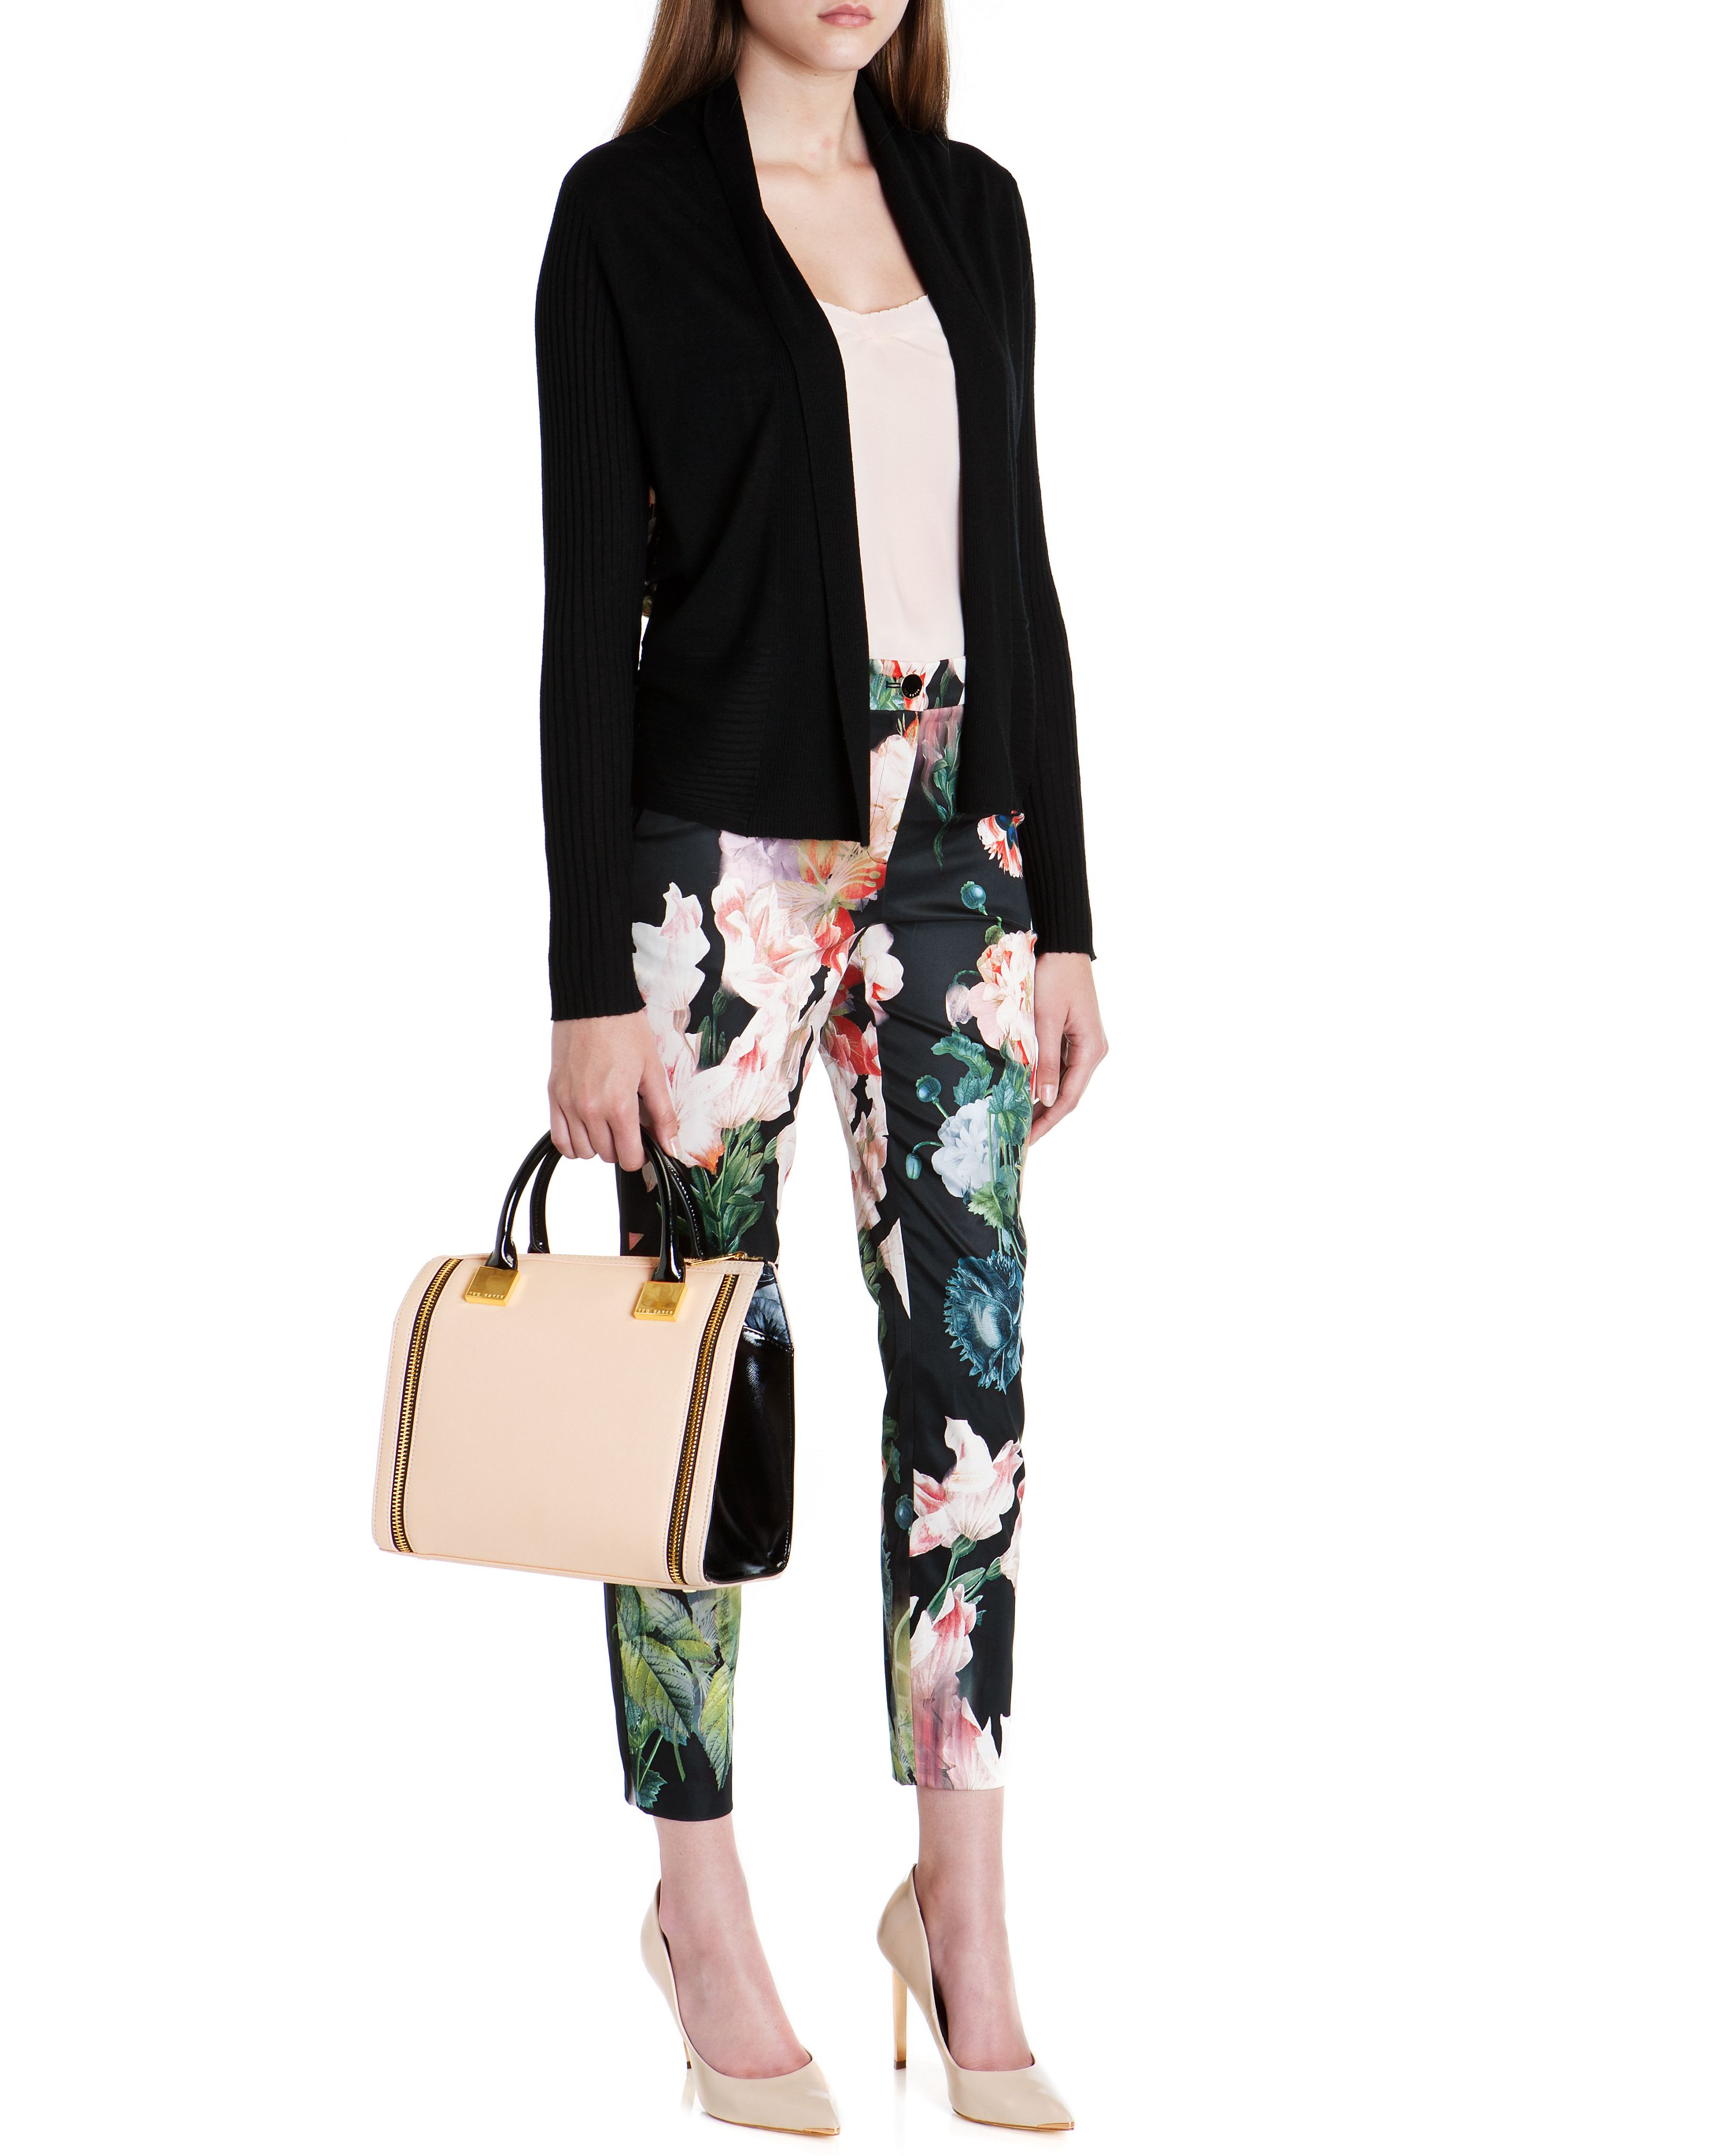 Aasha opulent bloom print trouser